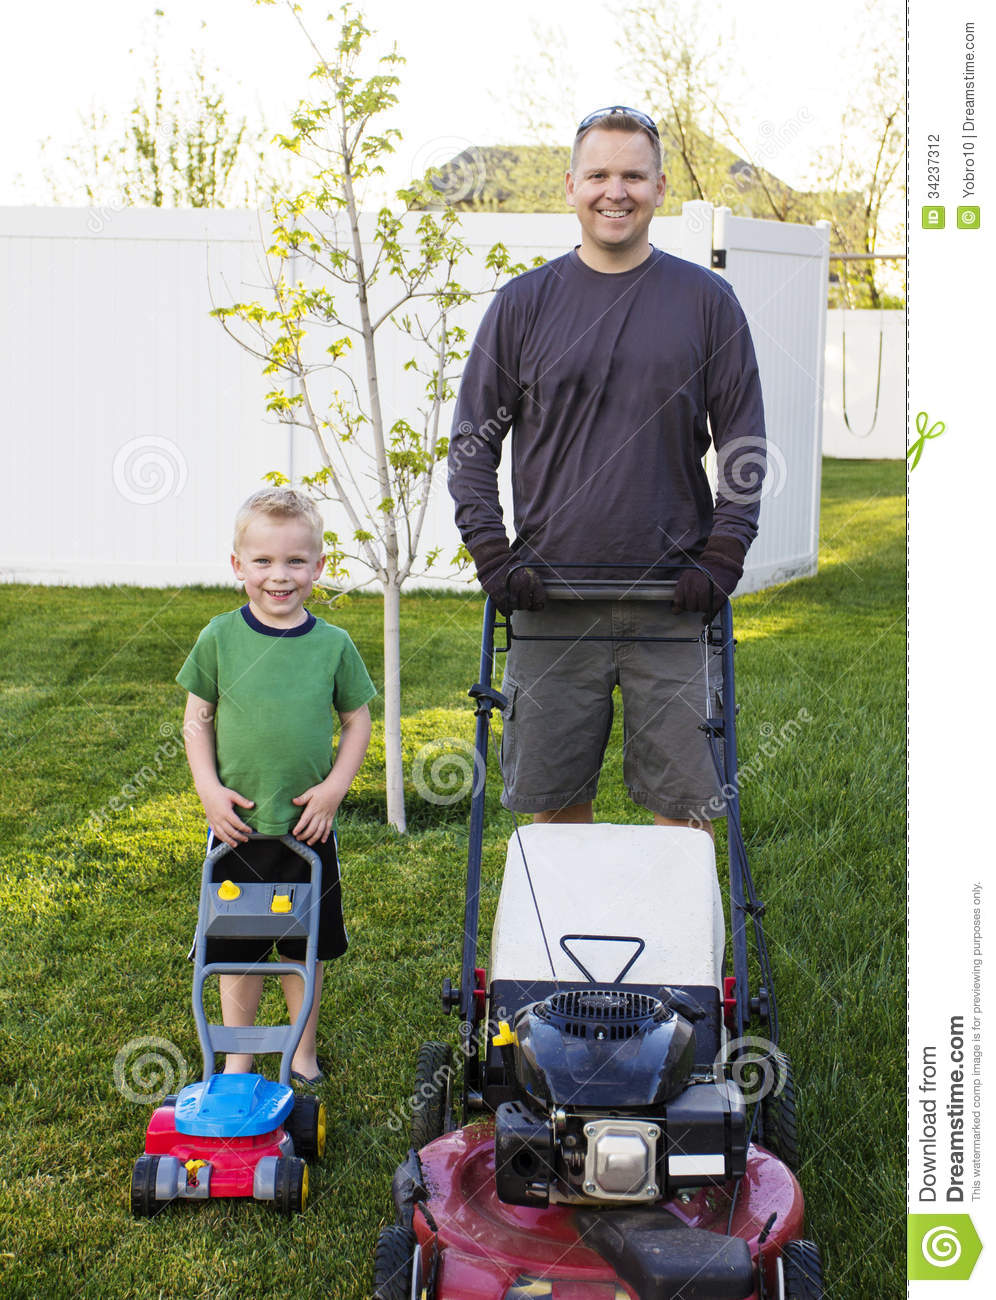 Father And Young Son Mowing The Lawn Together Stock Photo